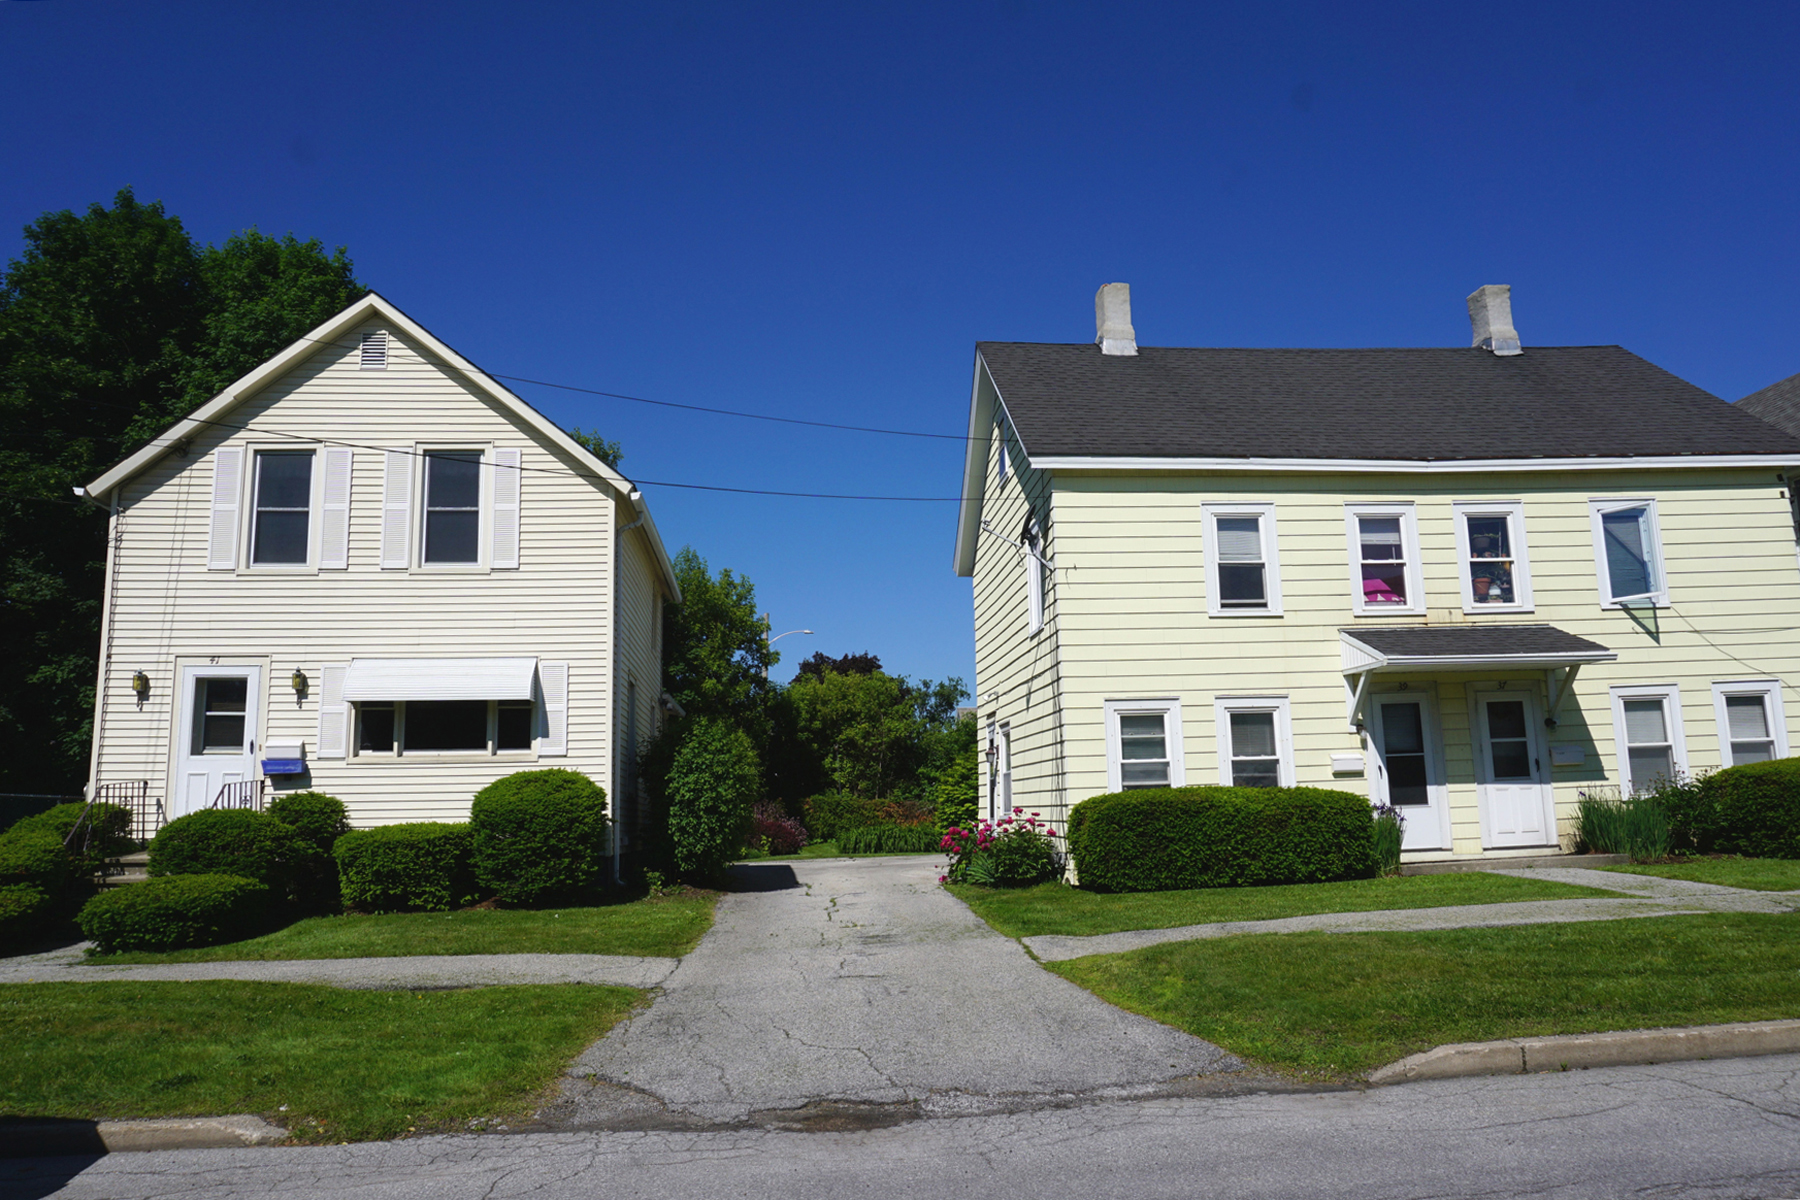 Multi-Family Homes for Sale at Live & Earn 37-41 East St Rutland, Vermont 05701 United States